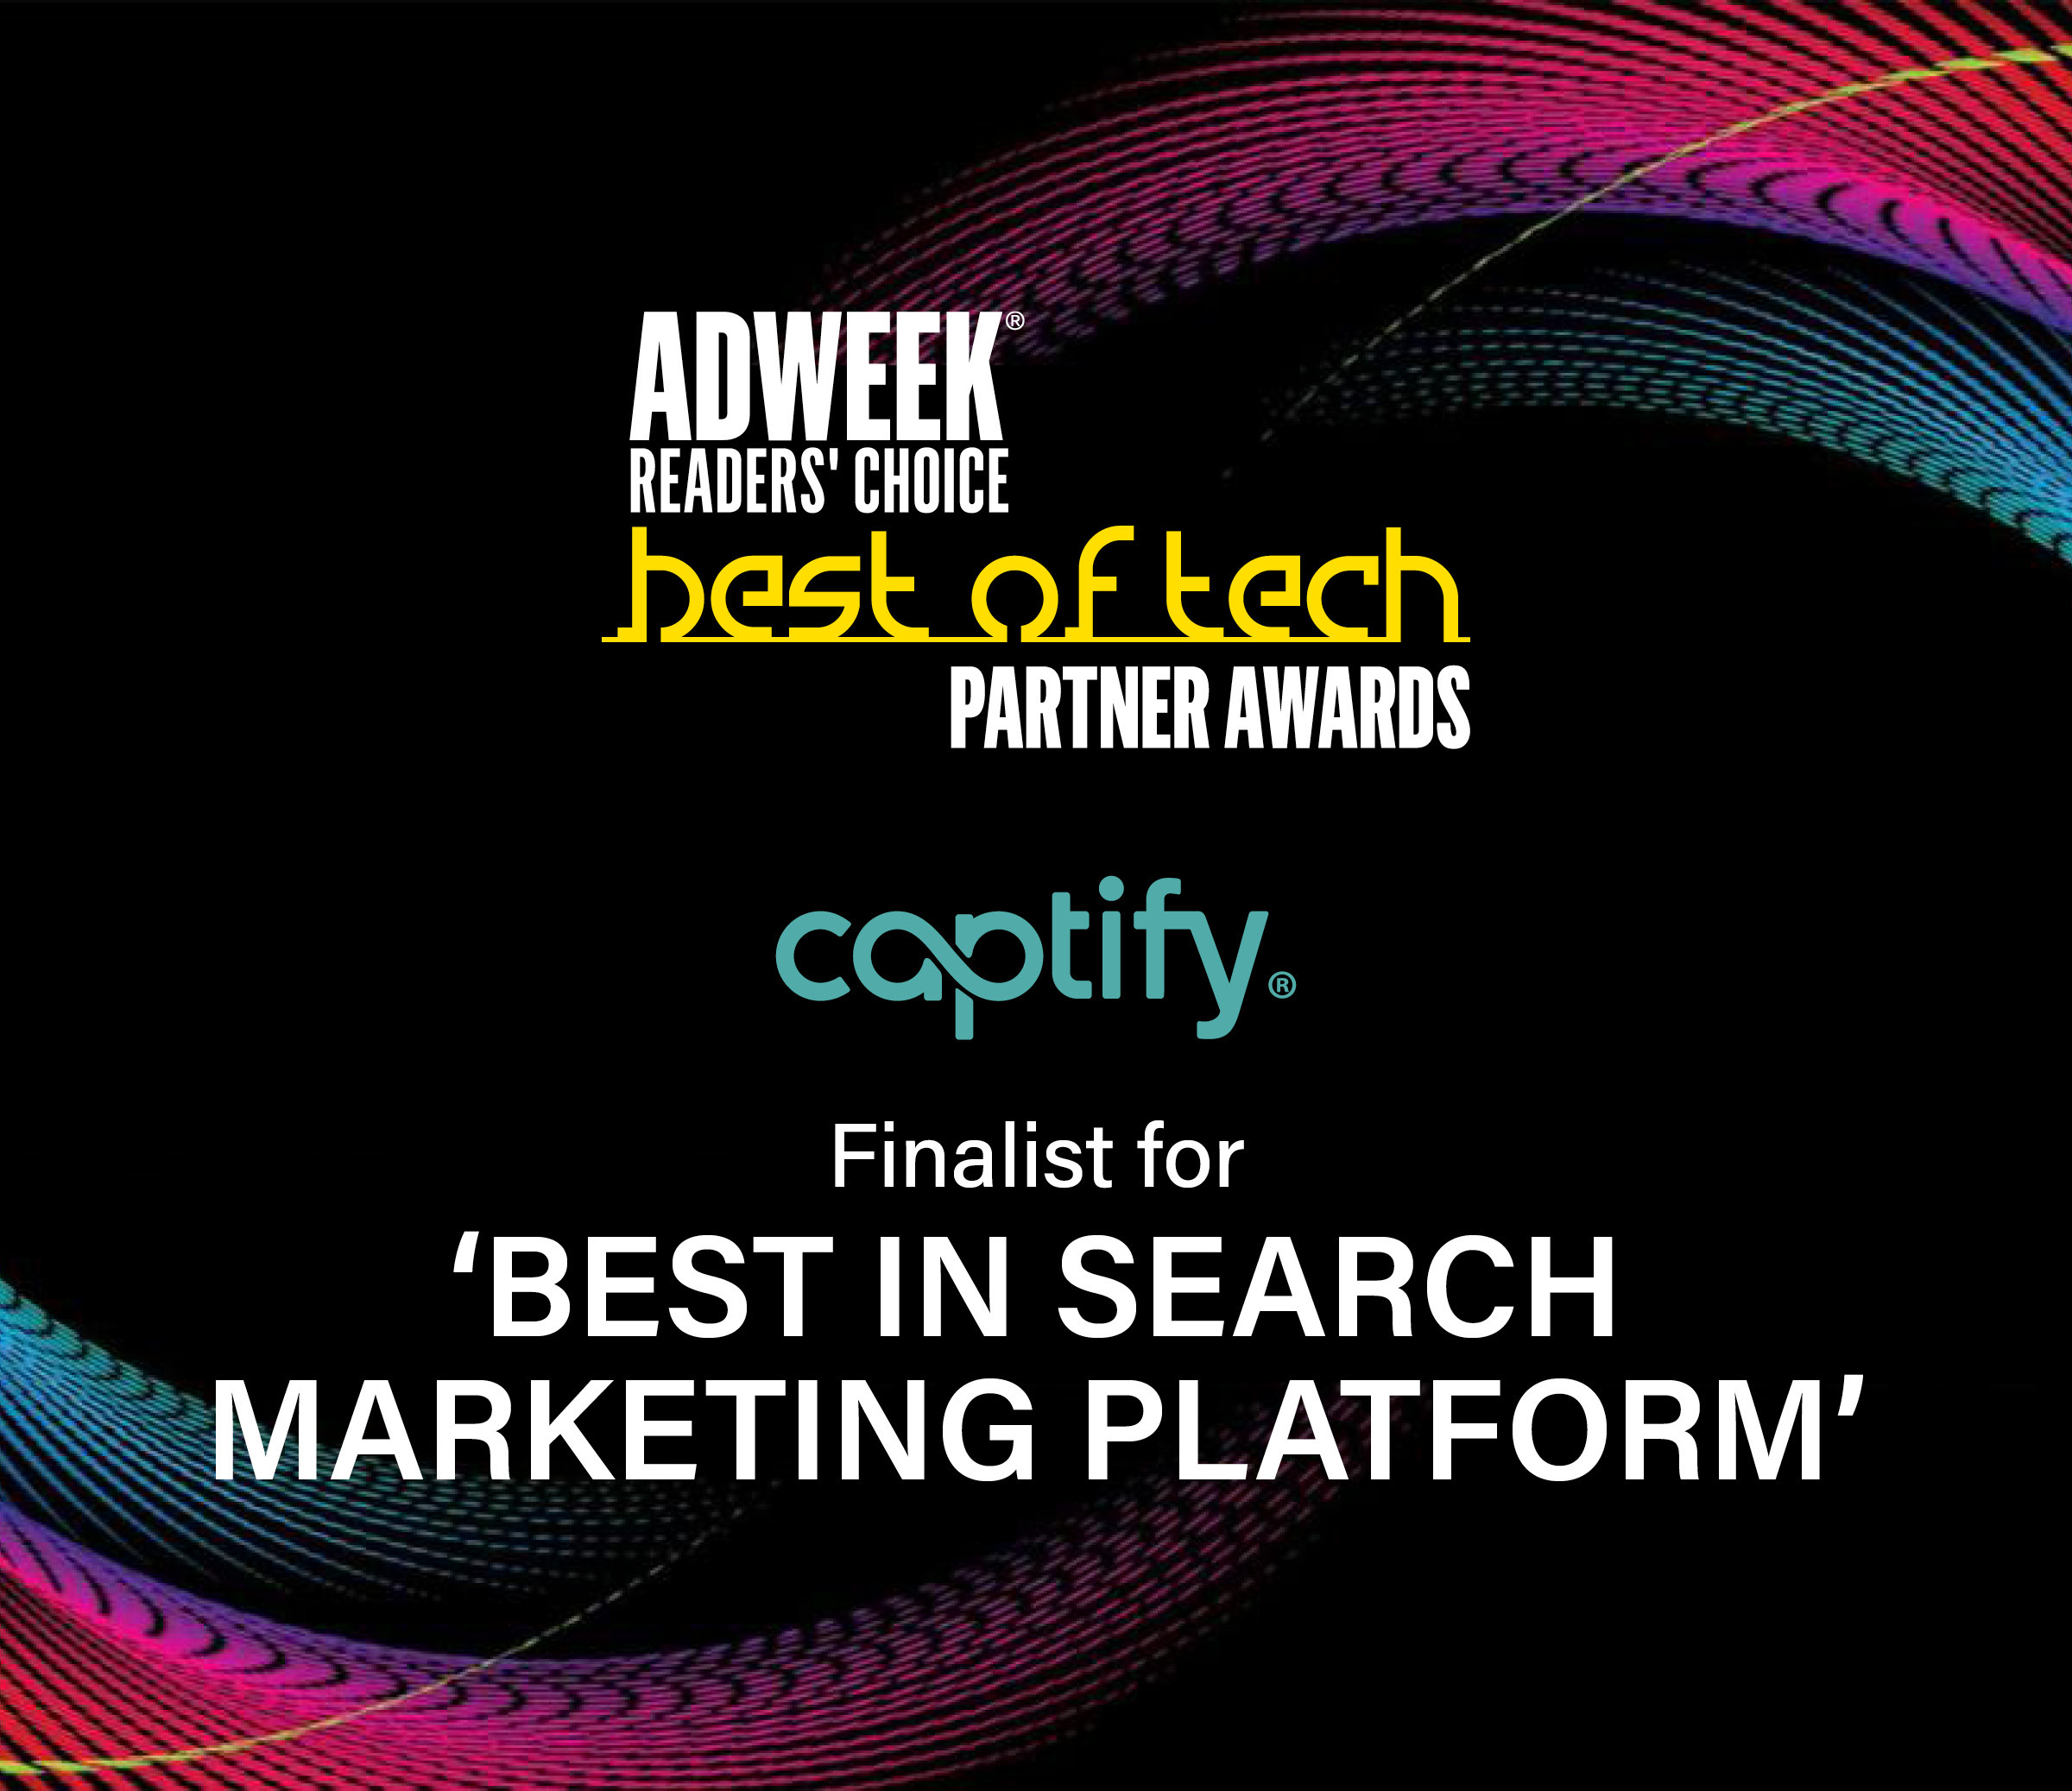 Captify Is Named A Finalist For Adweek's Best Of Tech Partner Awards